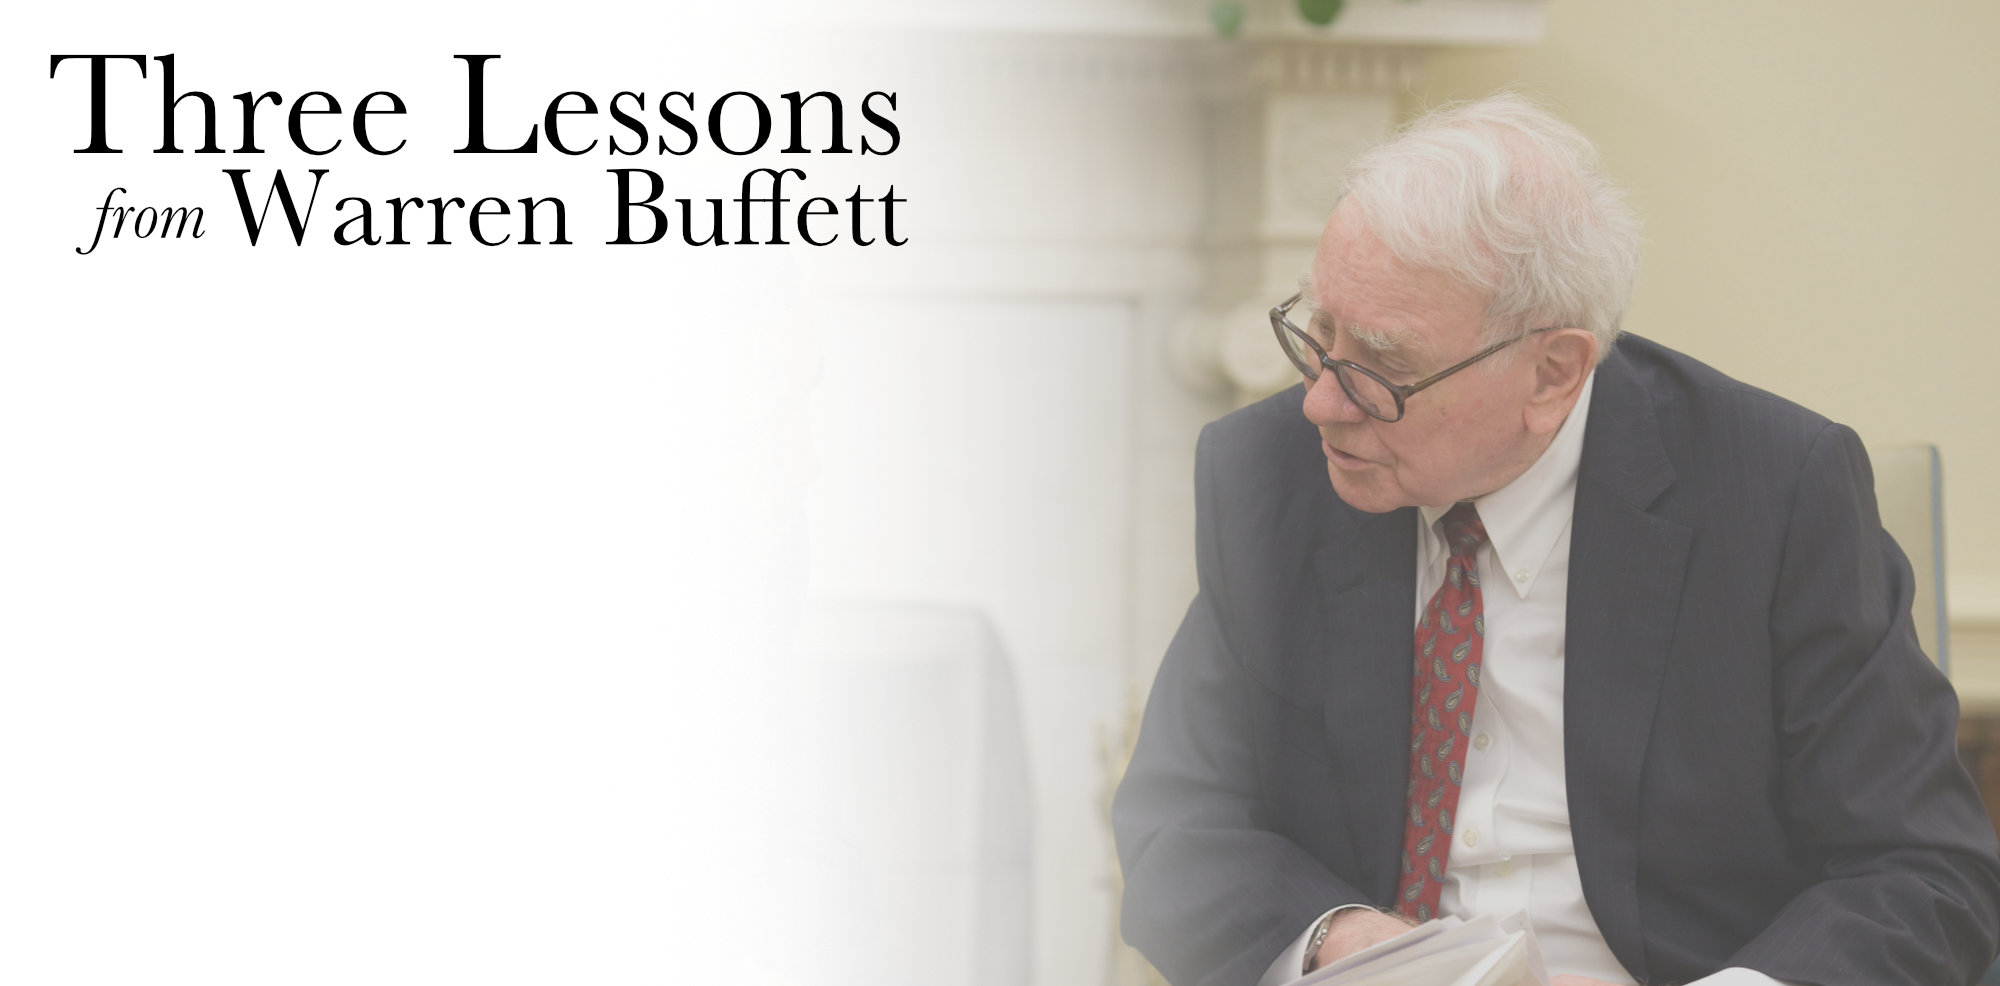 Three Lessons from Warren Buffett